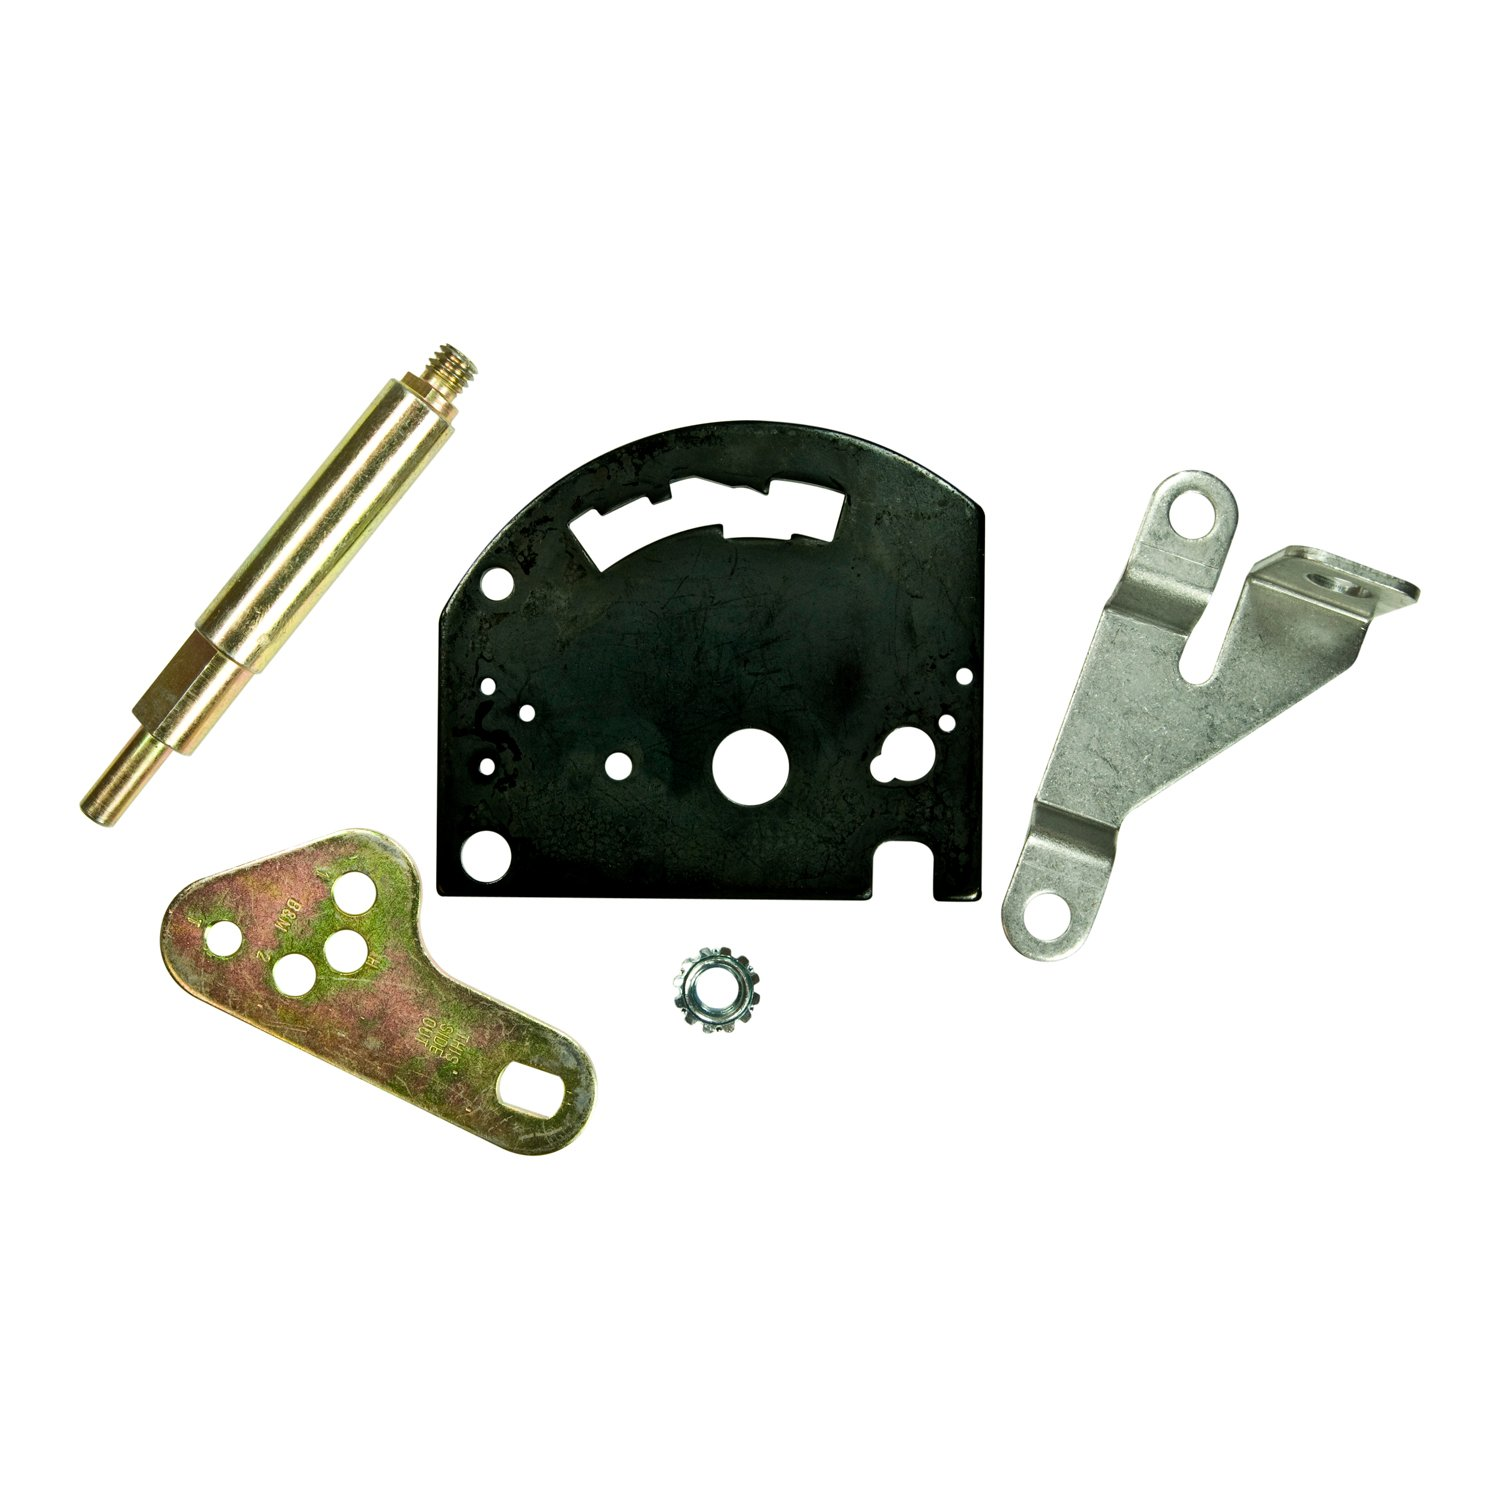 B&M Gate Plate, Shift Lever & Cable Bracket for Powerglide Transmissions